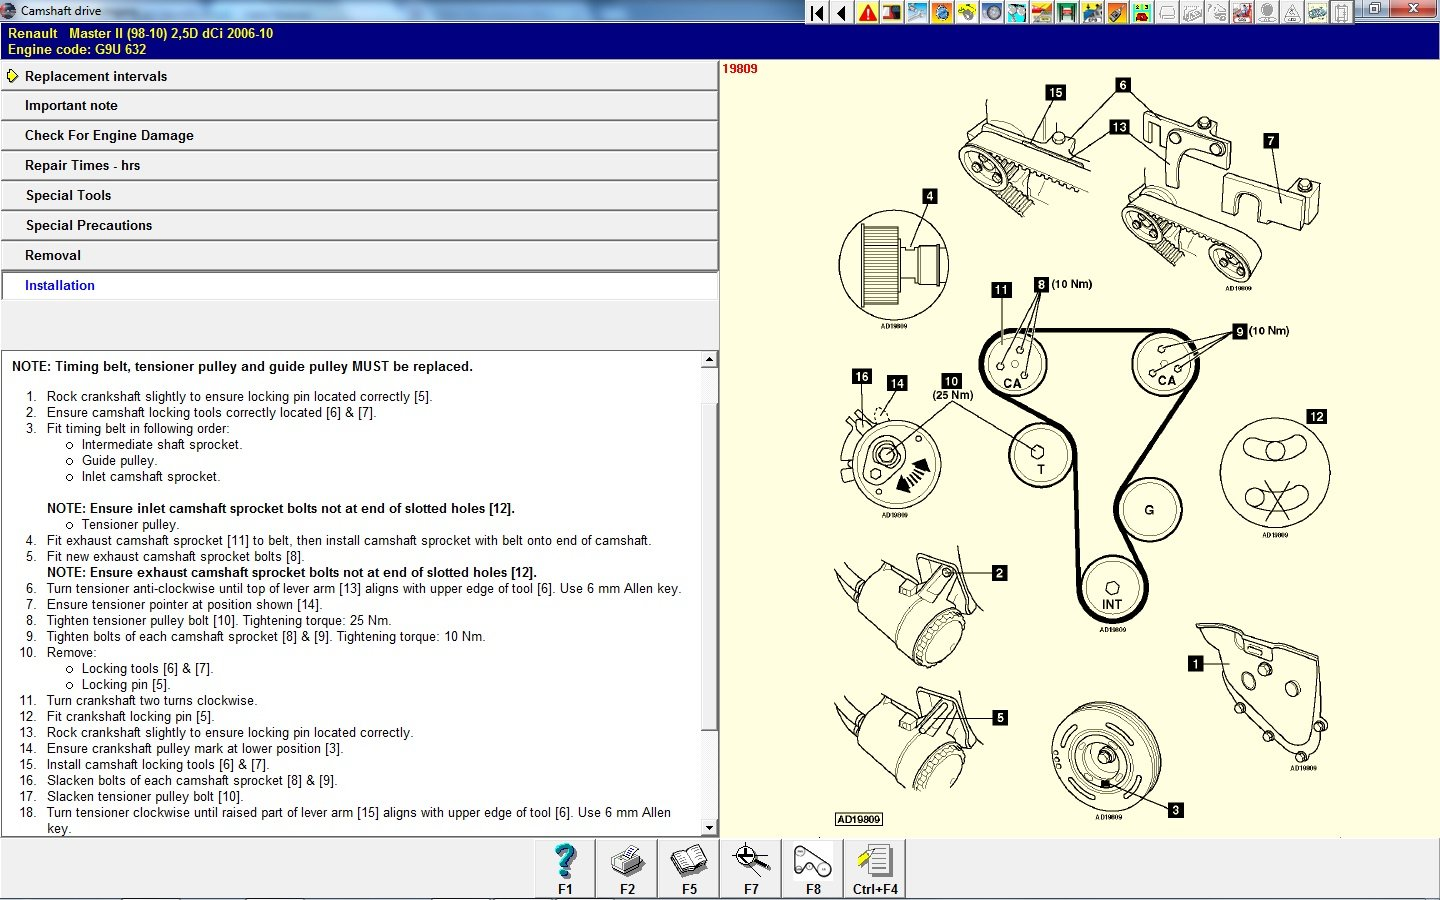 Im In The Middle Of Changing My Timing Belt On A Renault Master 25 D9a9784e 6e85 4a2f 92db 50be3d8922cf Cam Tim